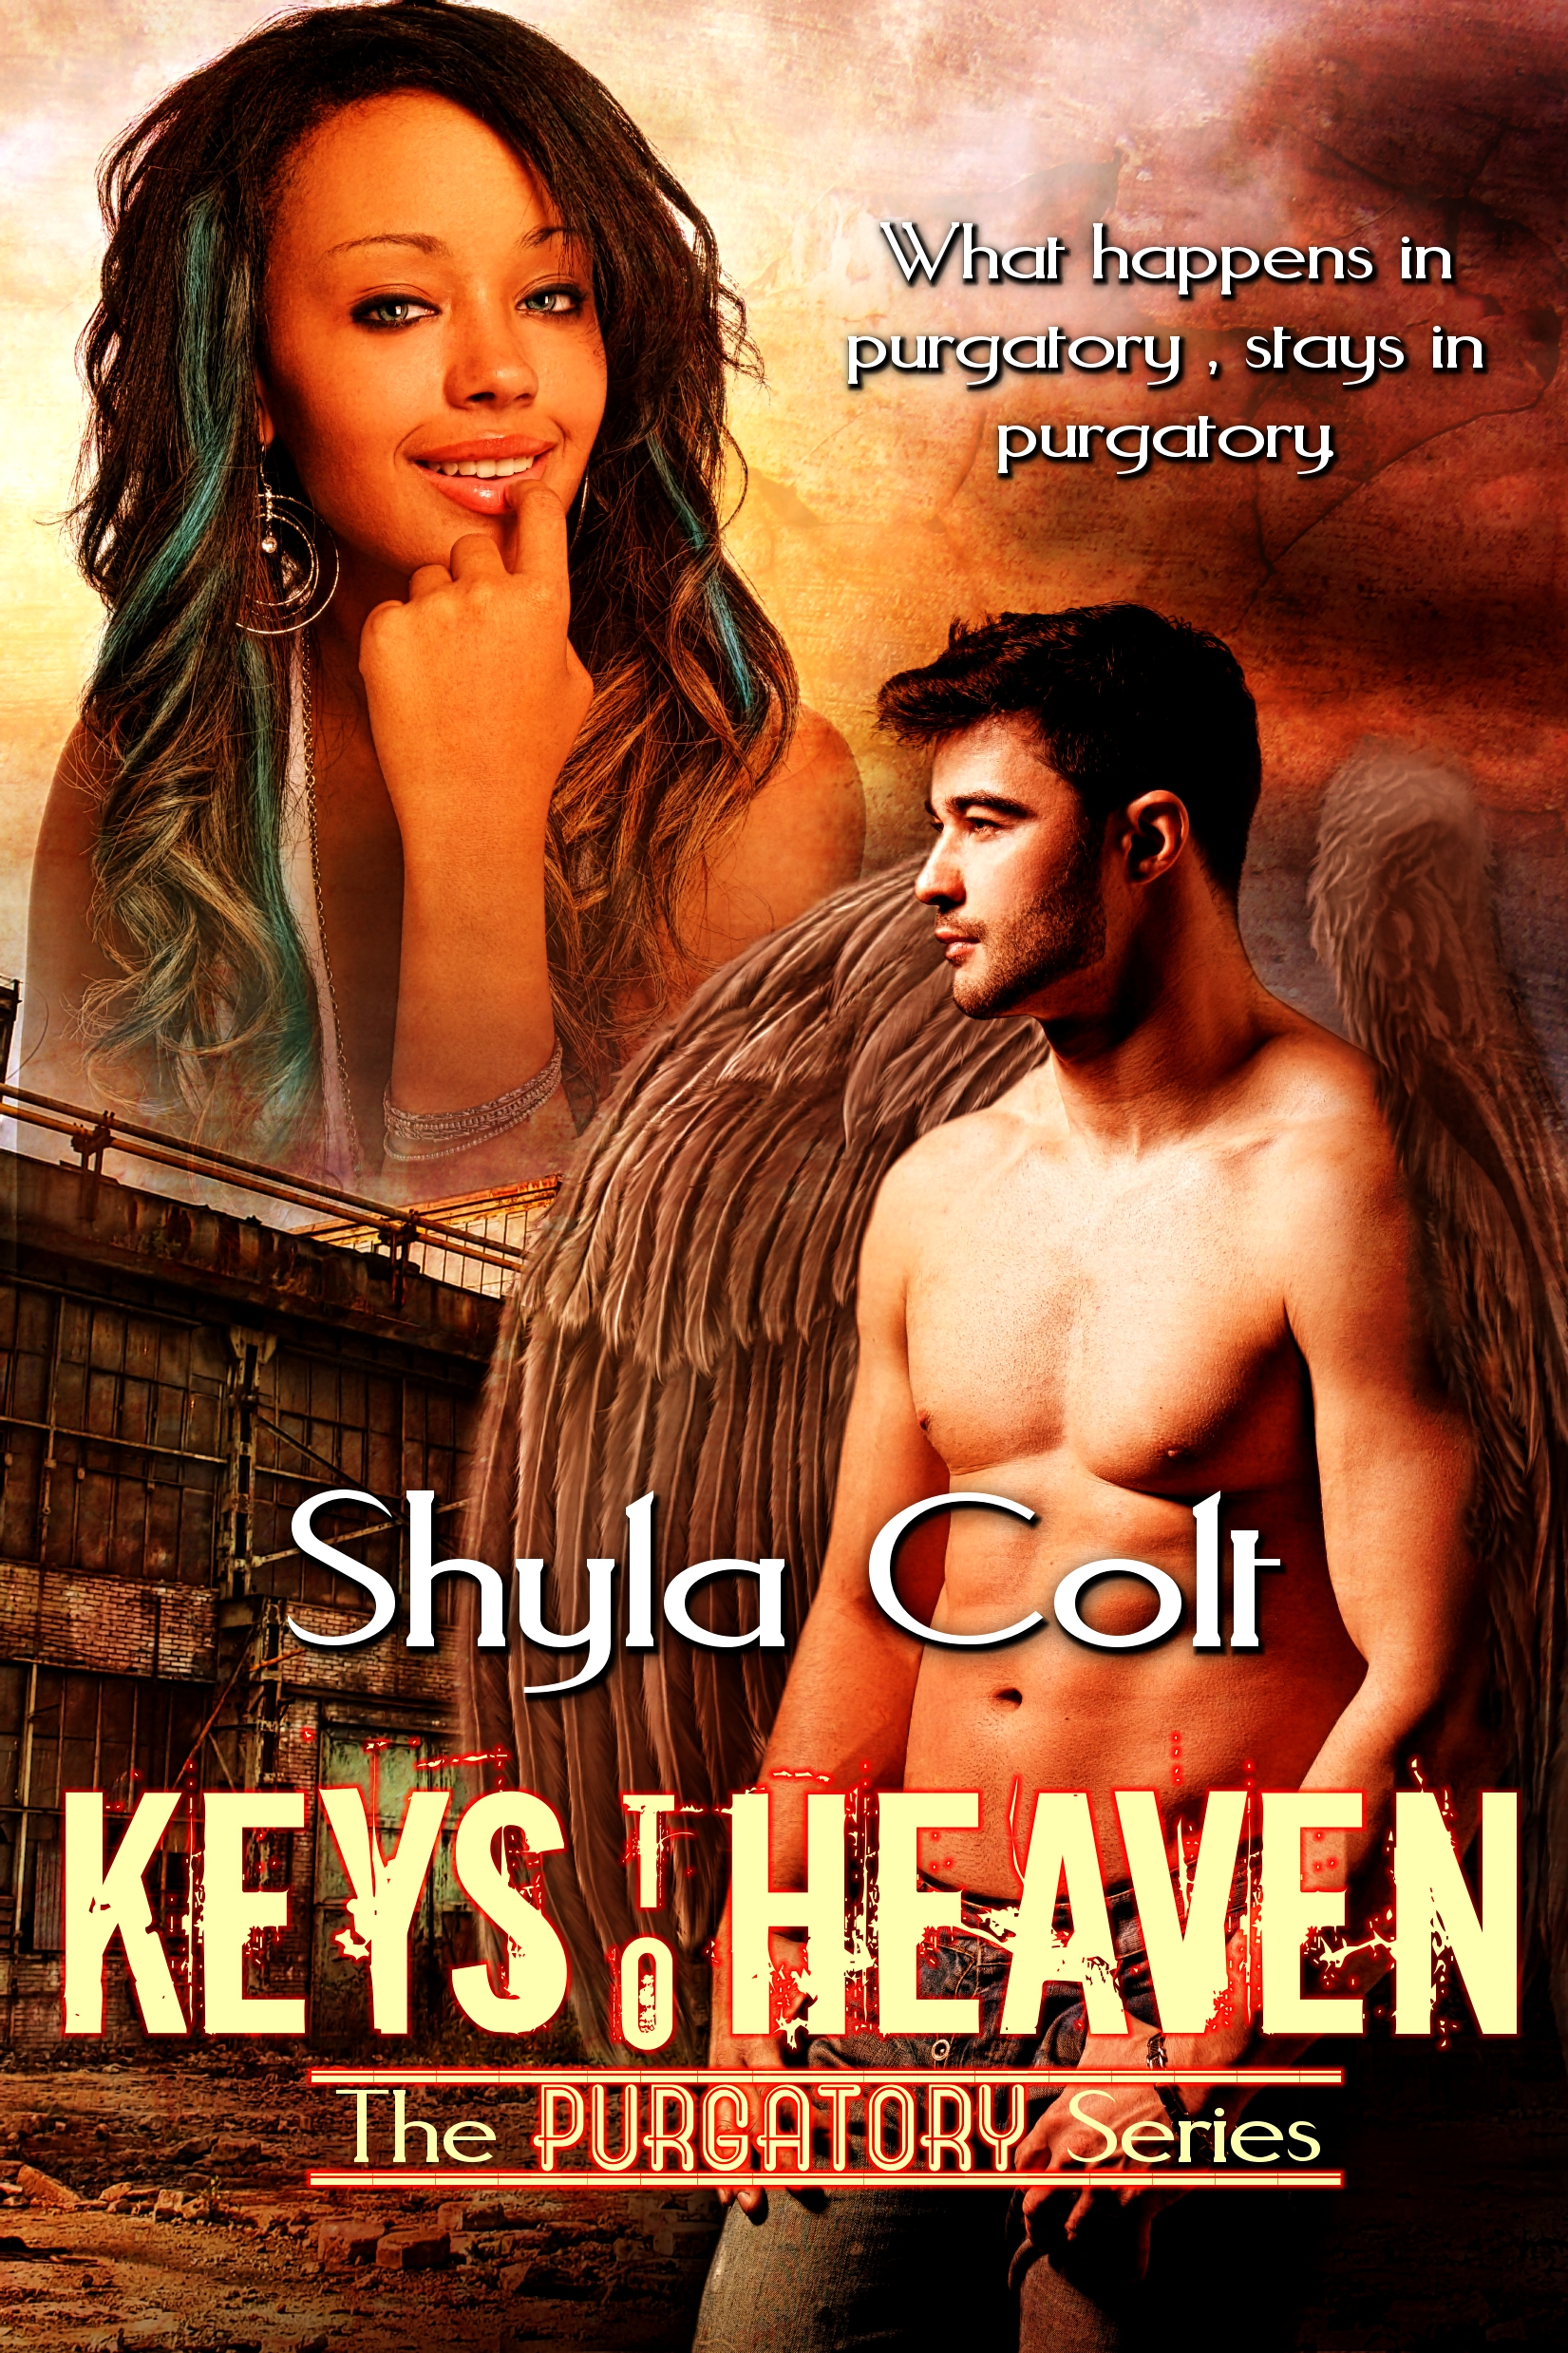 Shyla Colt - Keys to Heaven